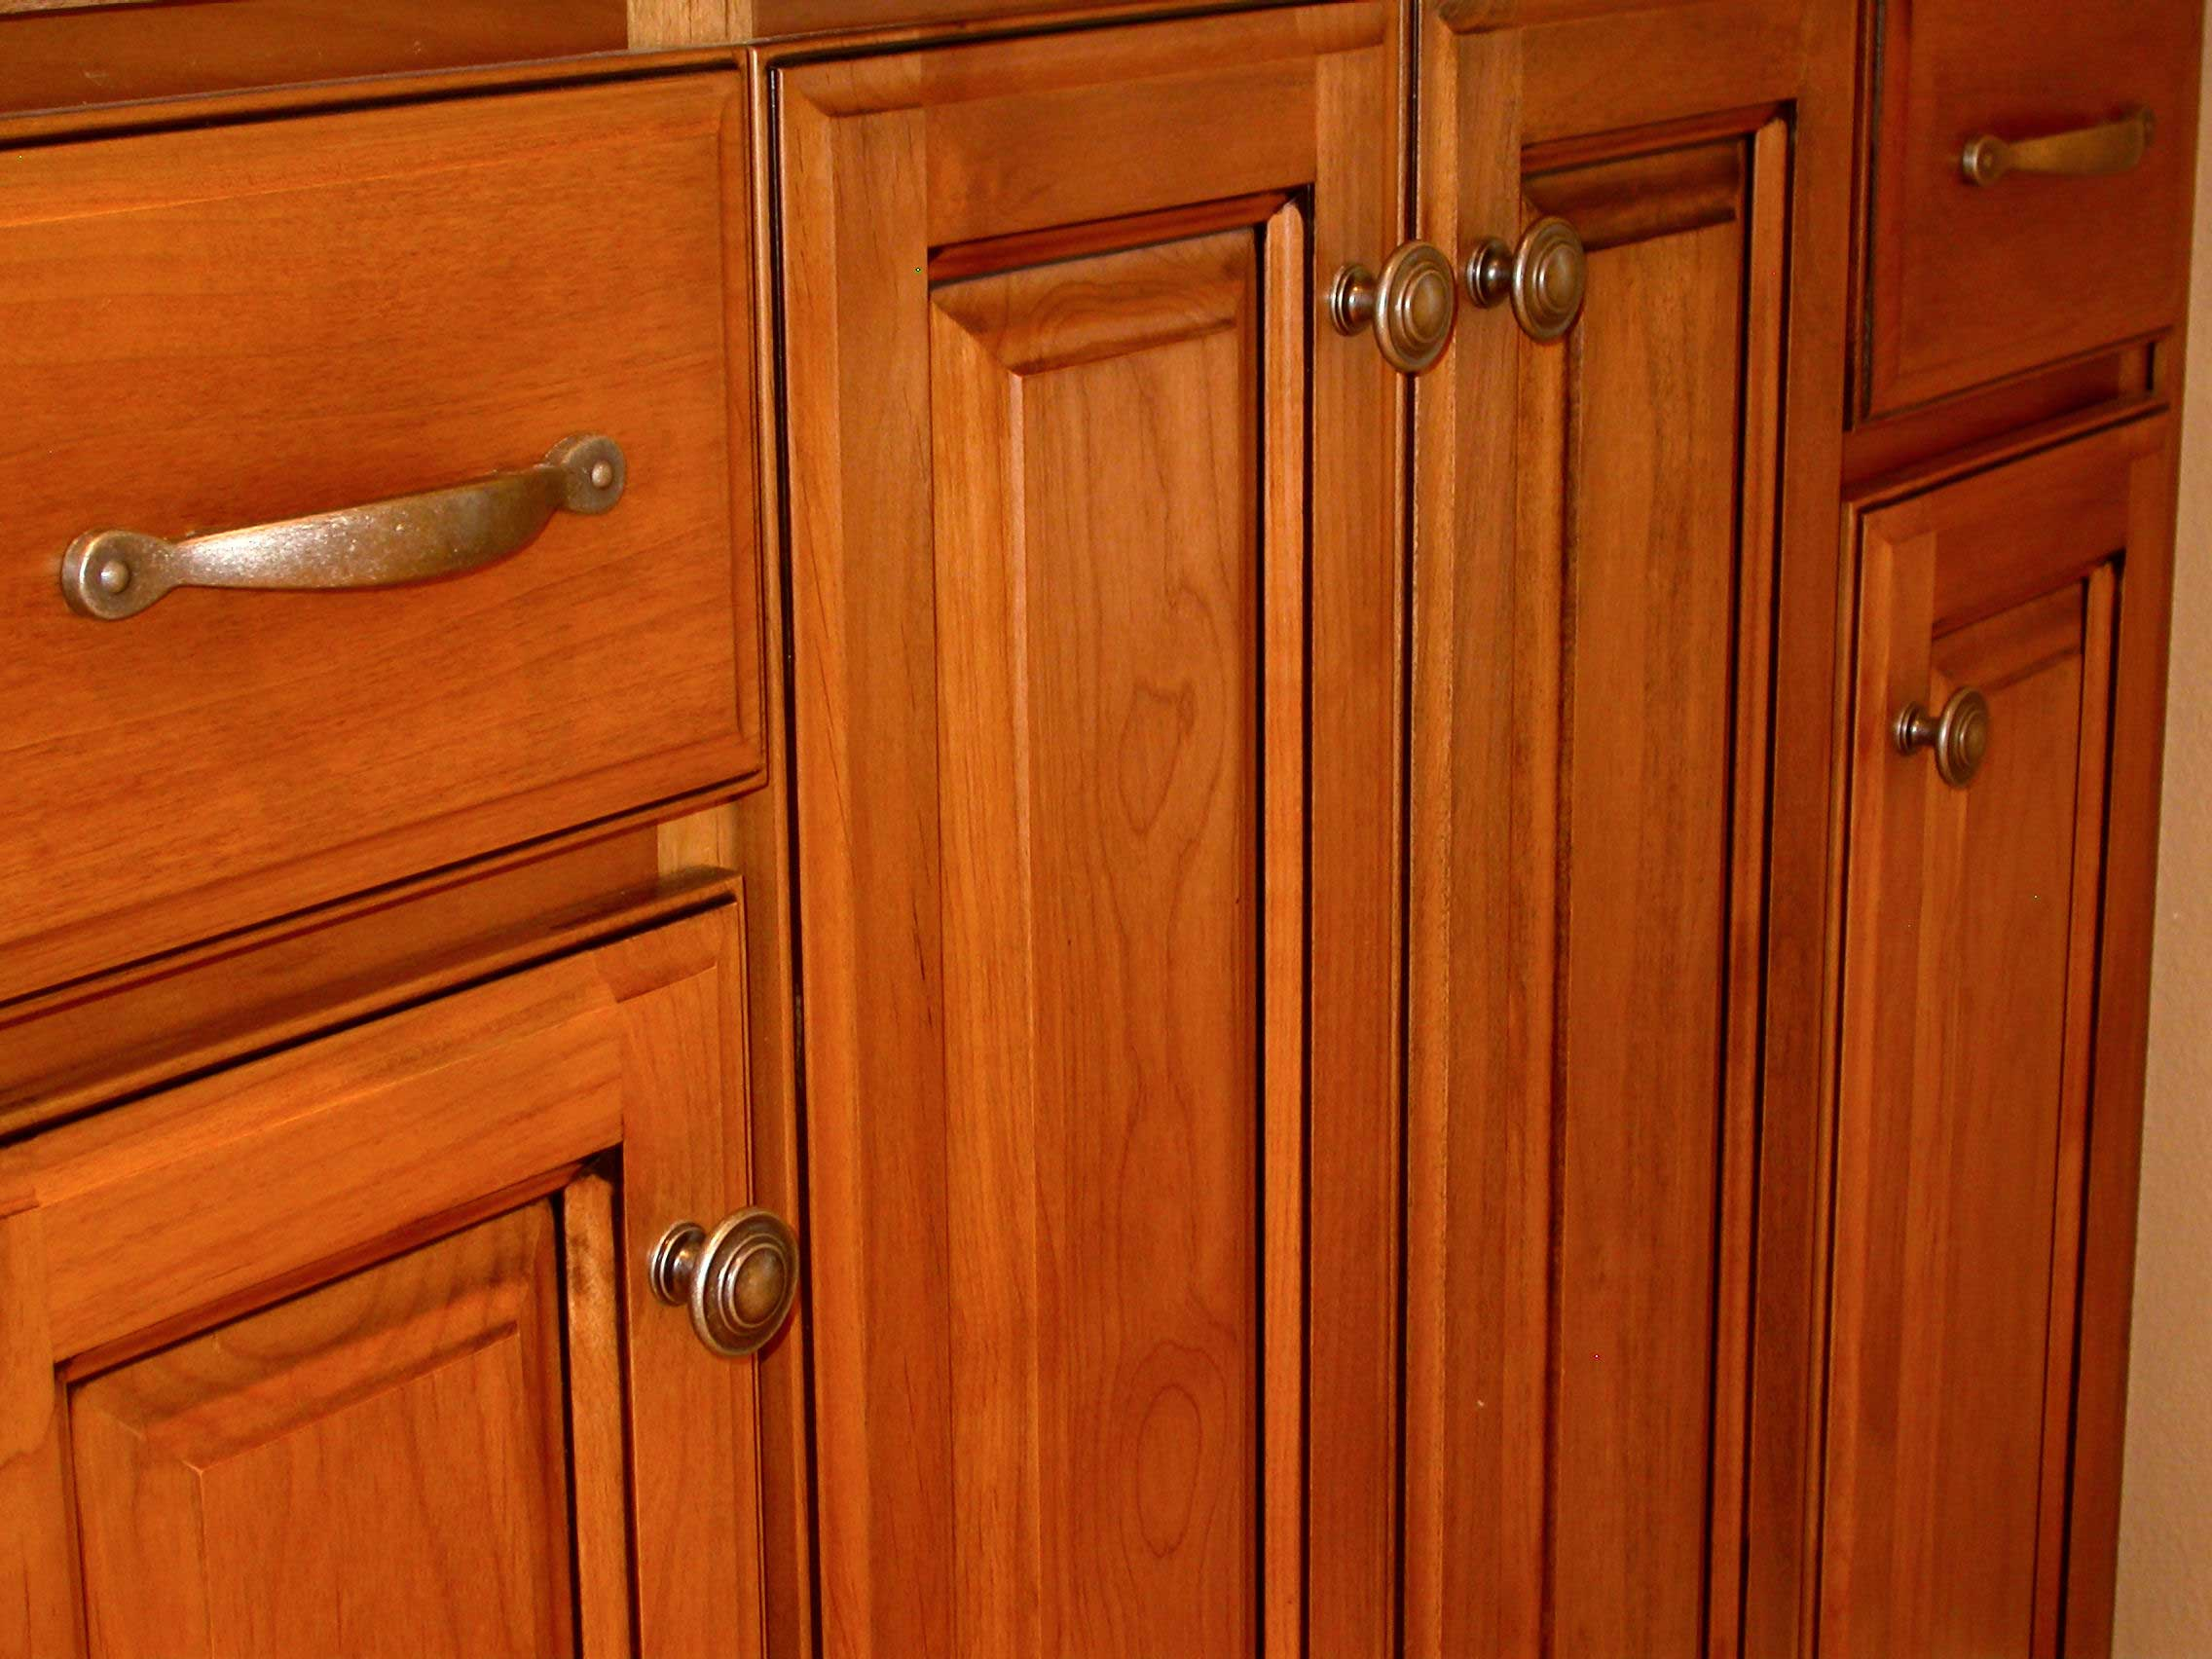 Kitchen Cabinet Pull Placement 100 Kitchen Cabinet Hardware Placement Glass Kitchen Cabinet